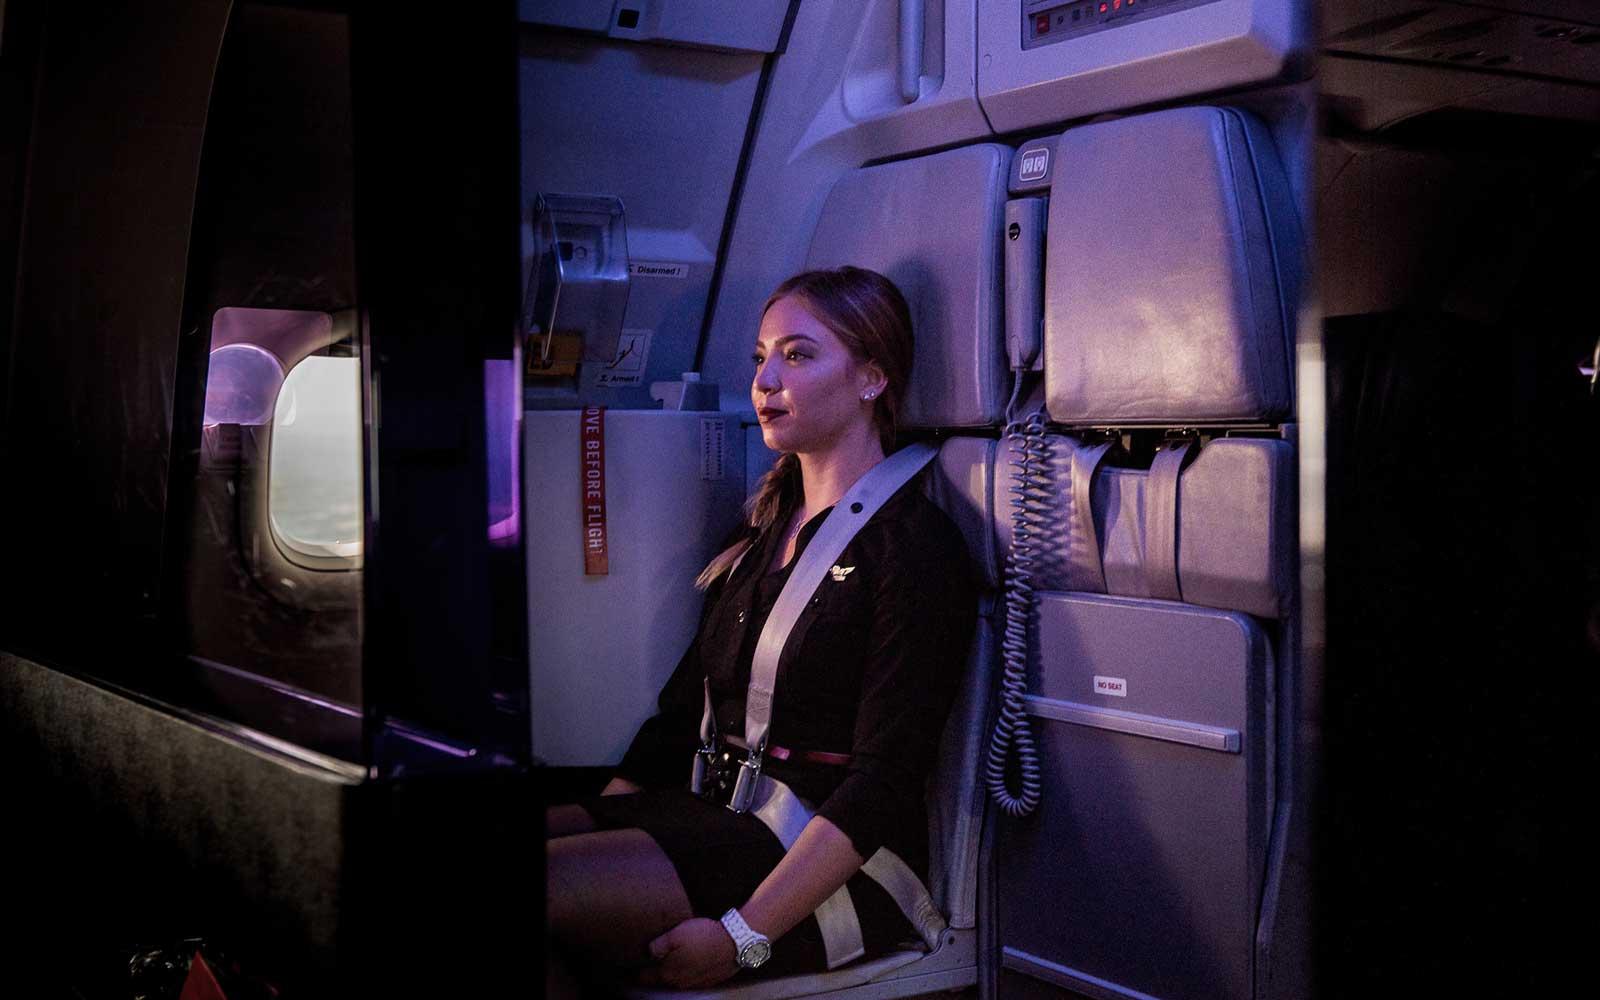 Virgin America Flight Attendant Photographer